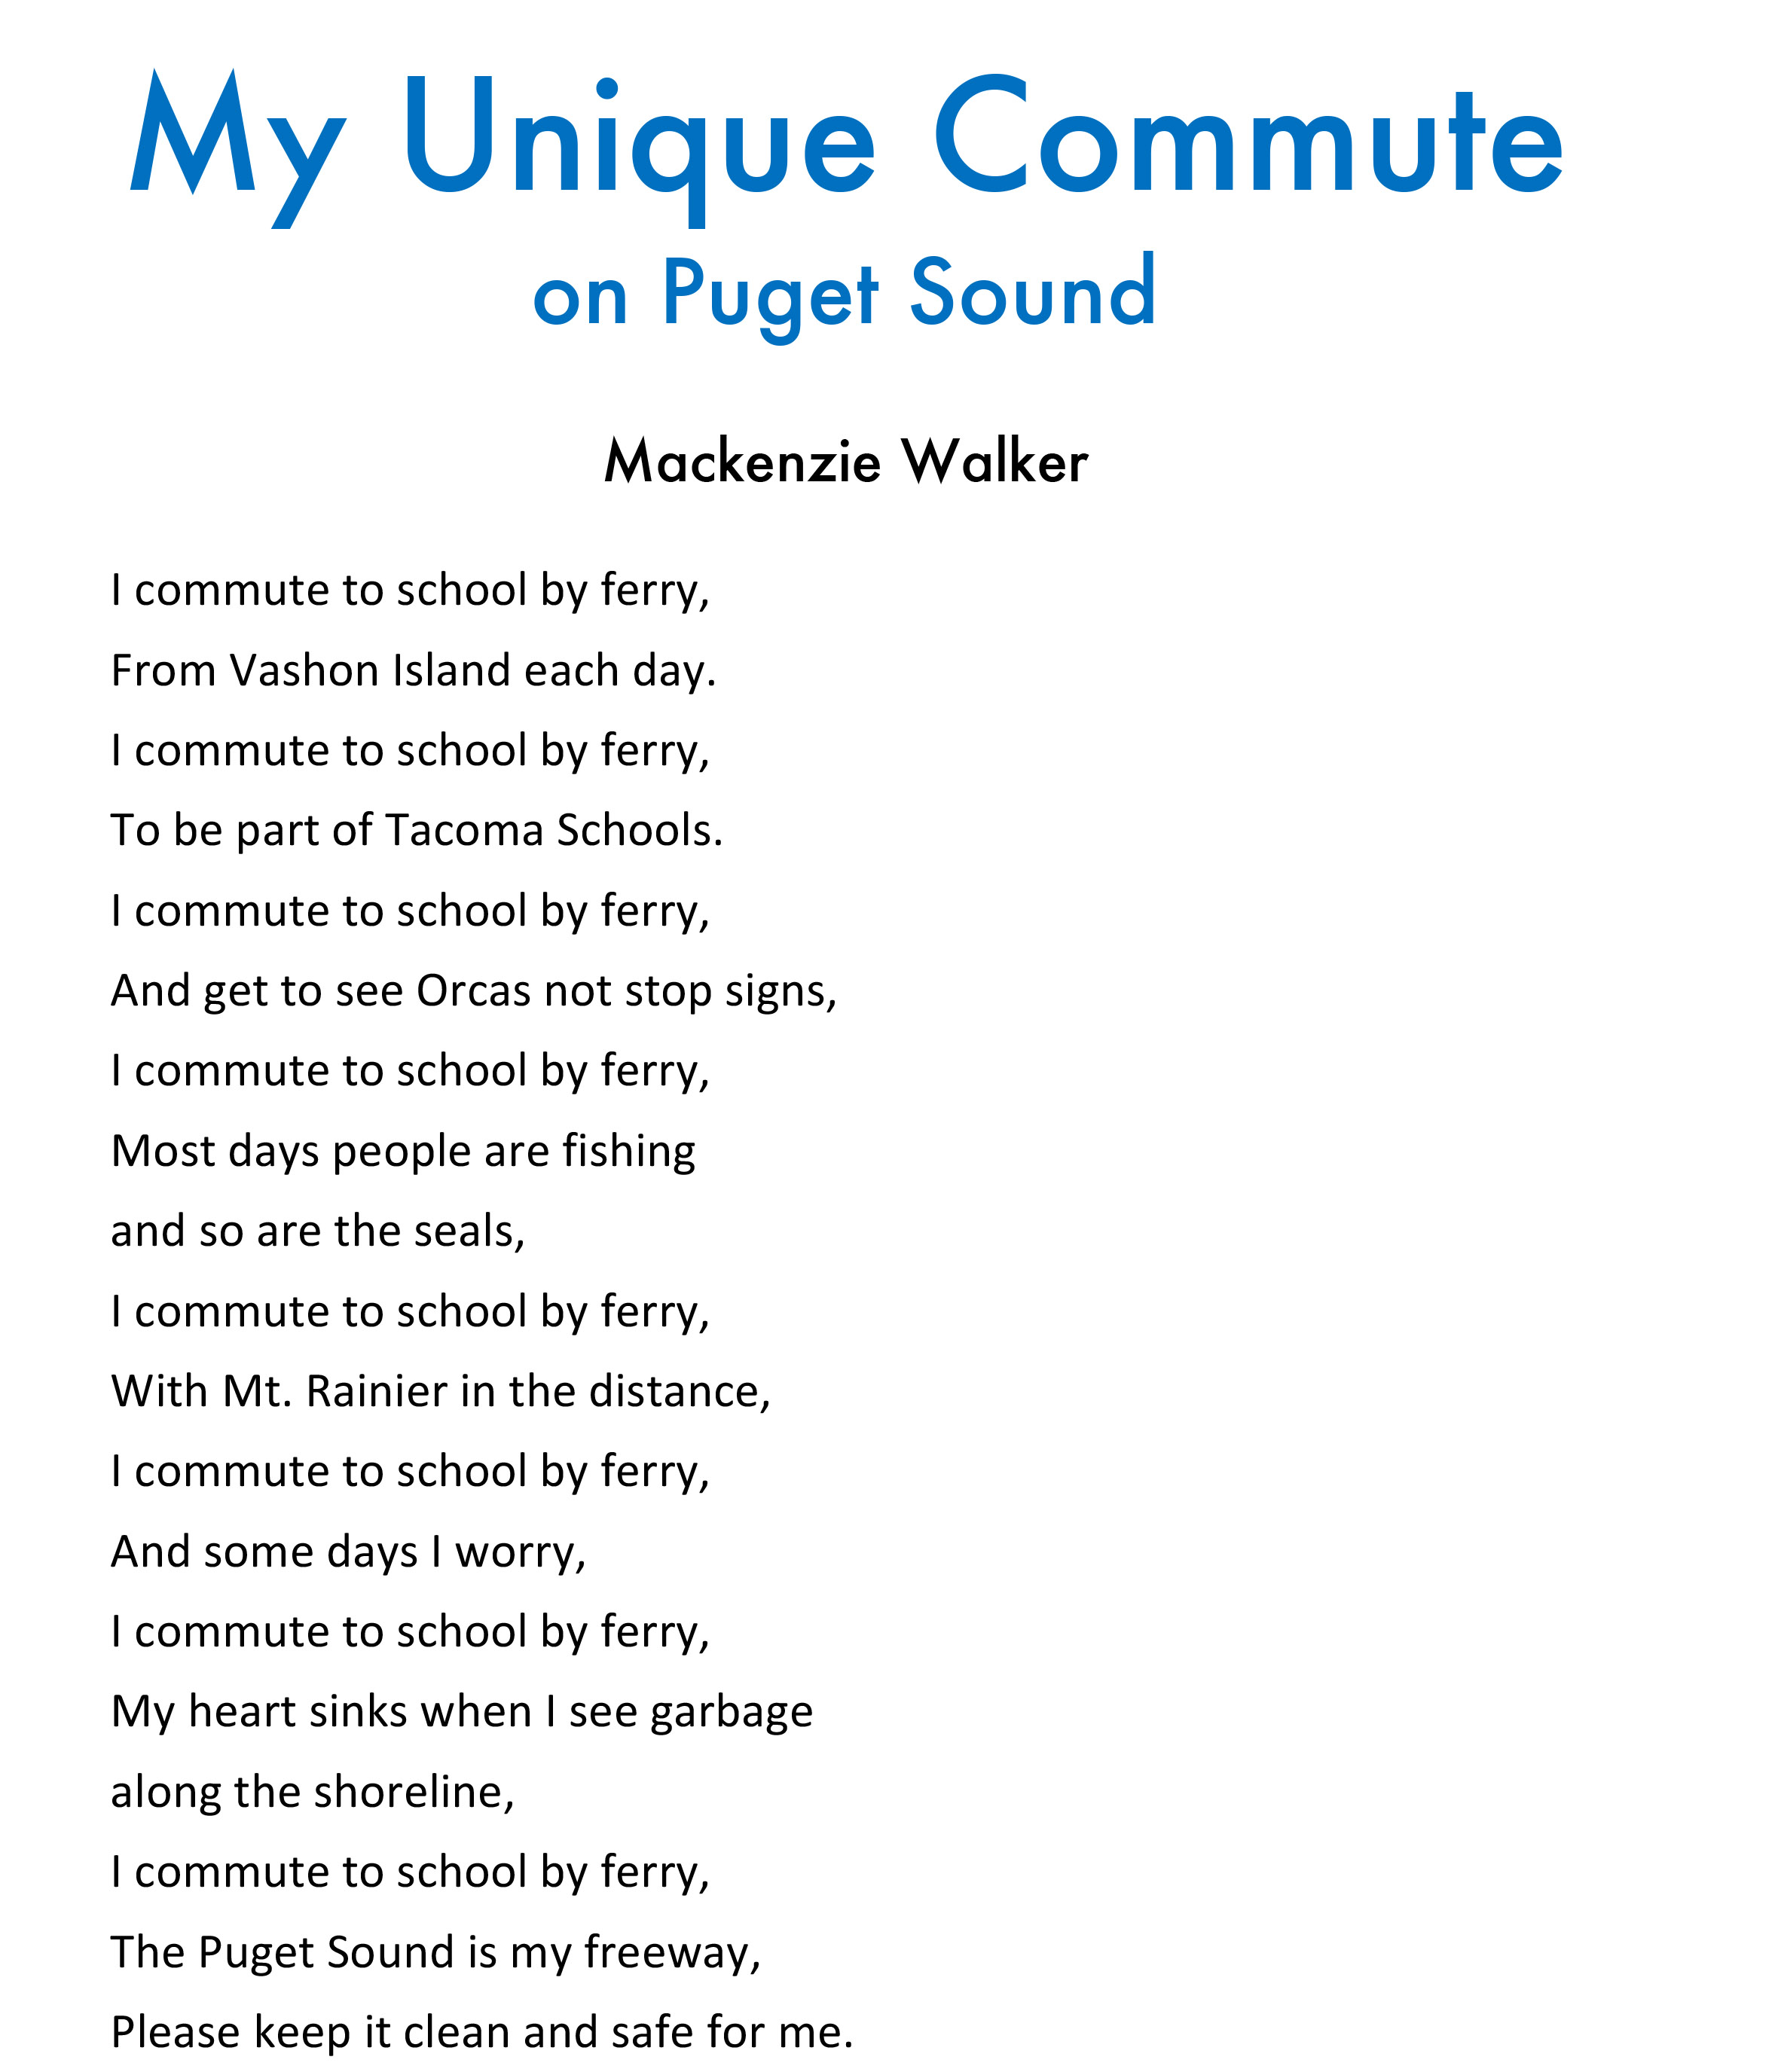 Mackenzie Walker - My Unique Commute